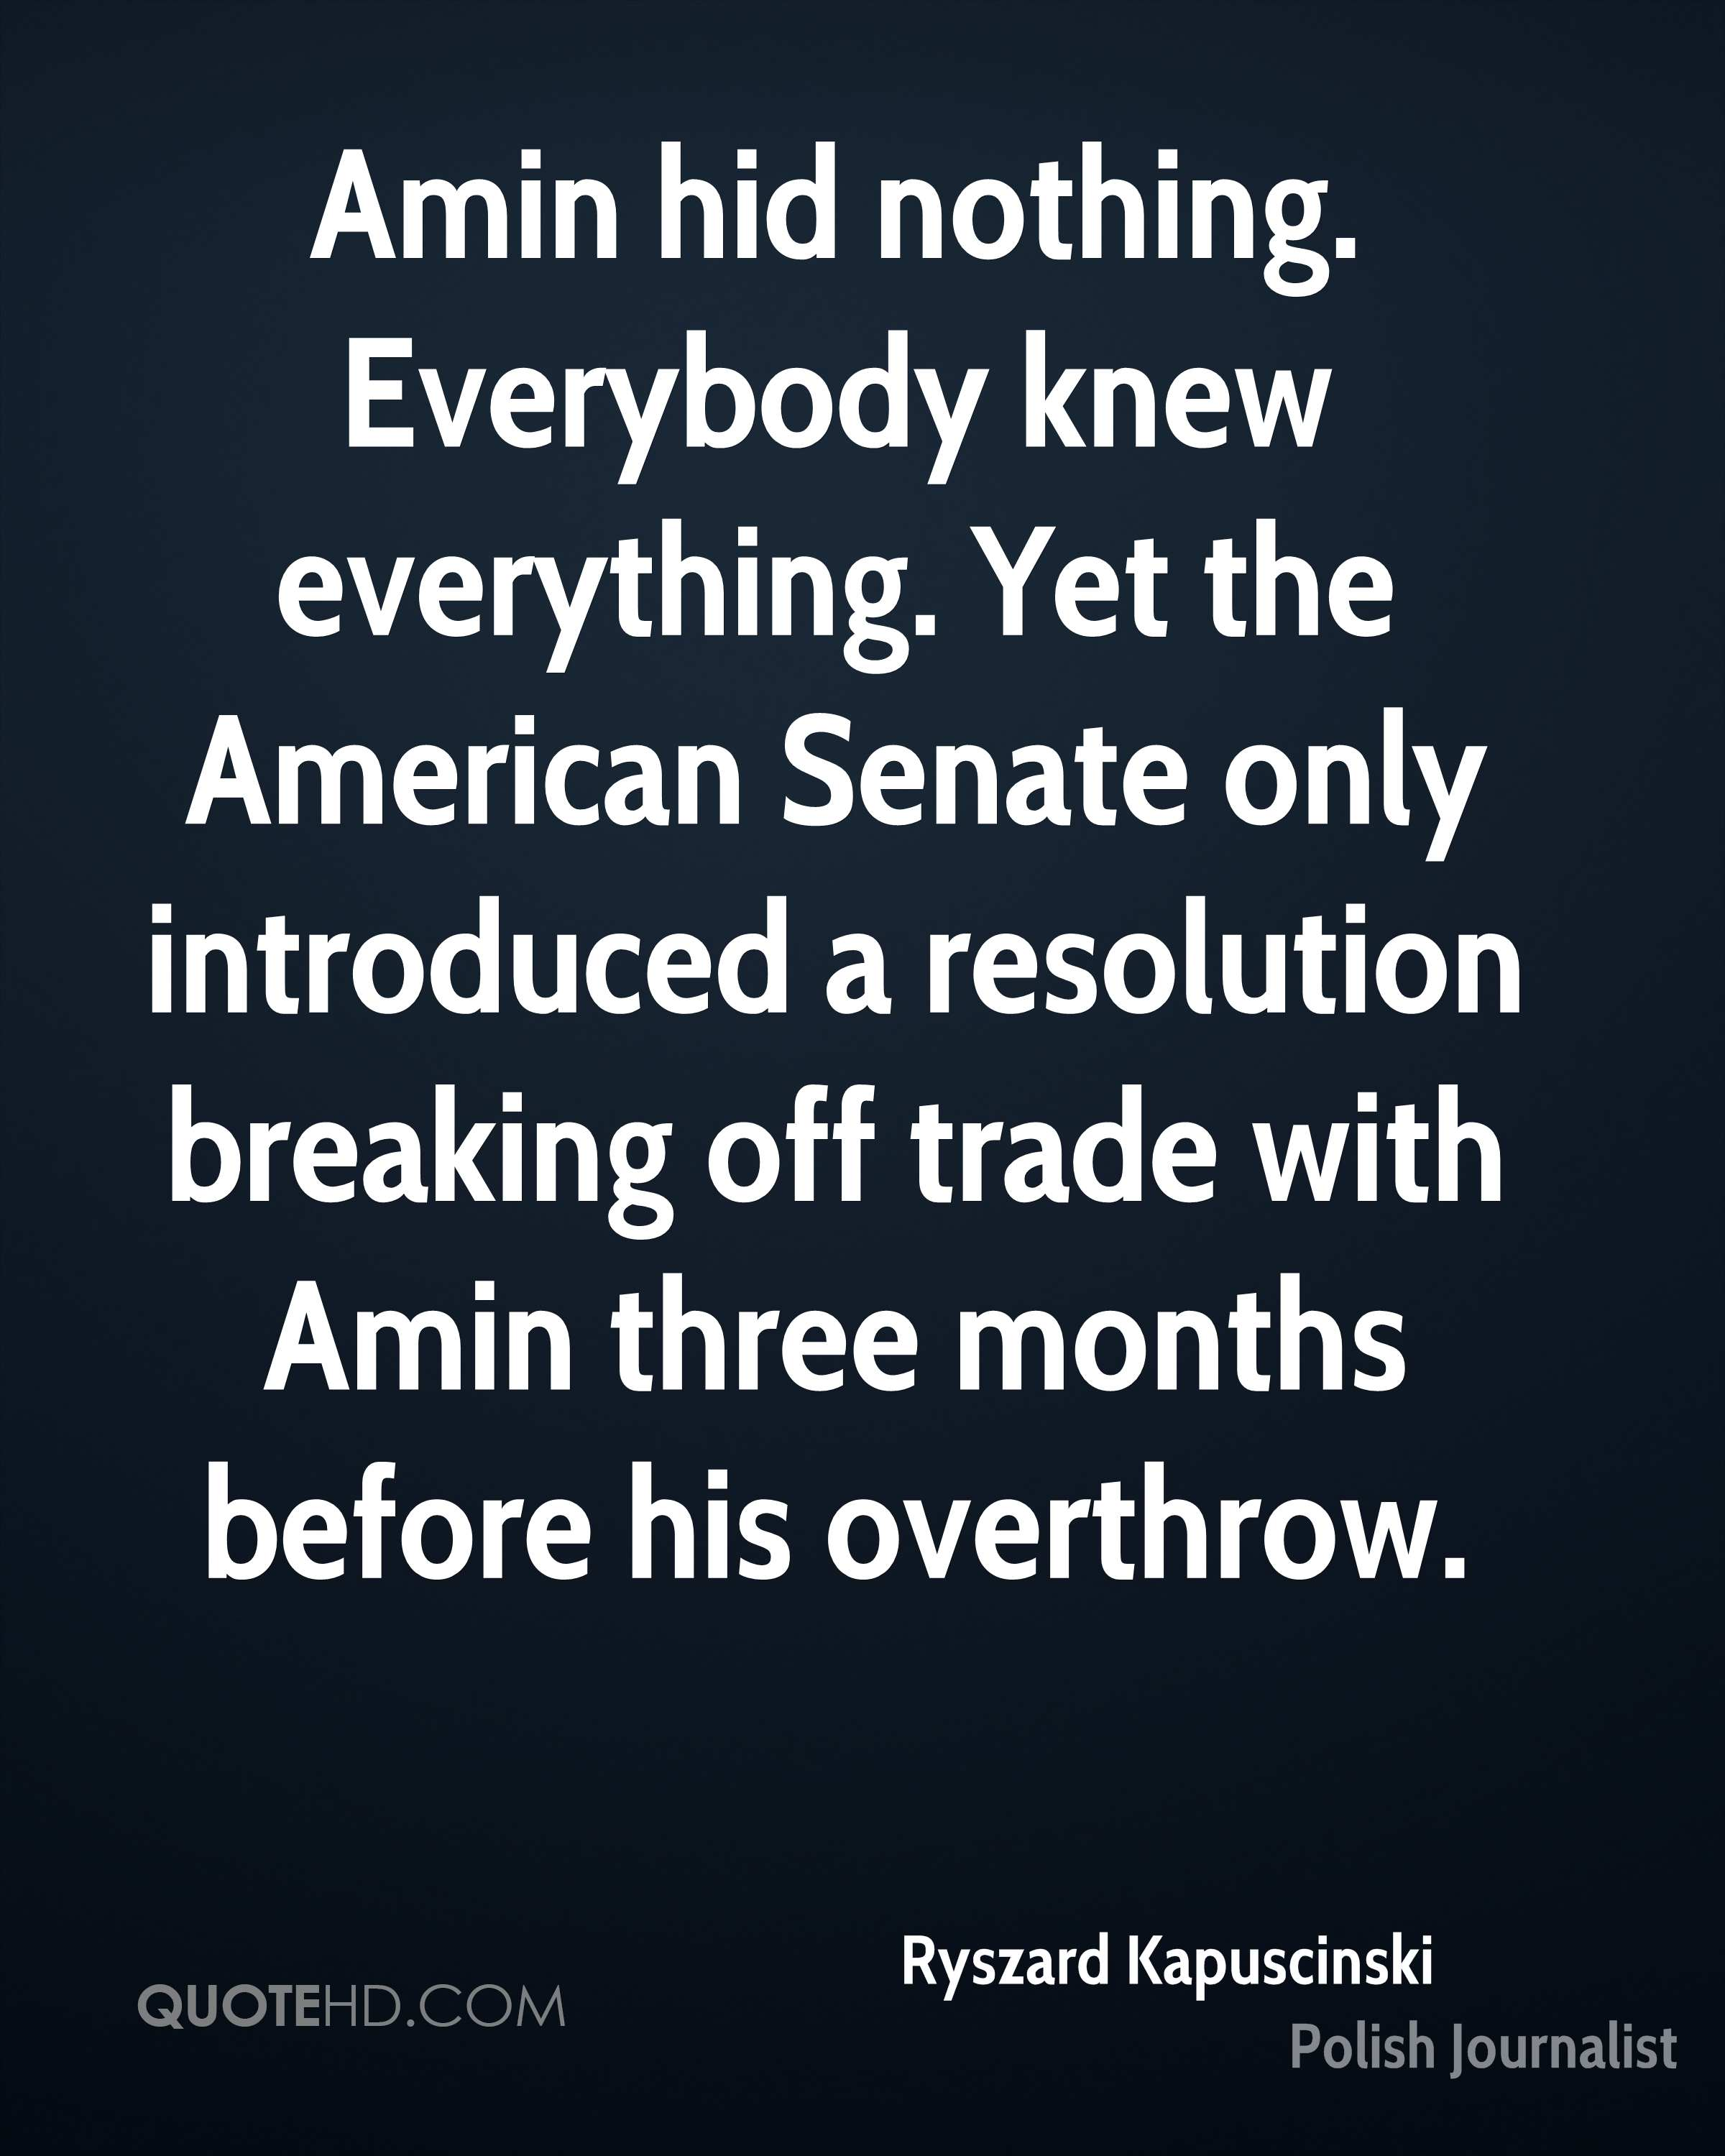 Amin hid nothing. Everybody knew everything. Yet the American Senate only introduced a resolution breaking off trade with Amin three months before his overthrow.